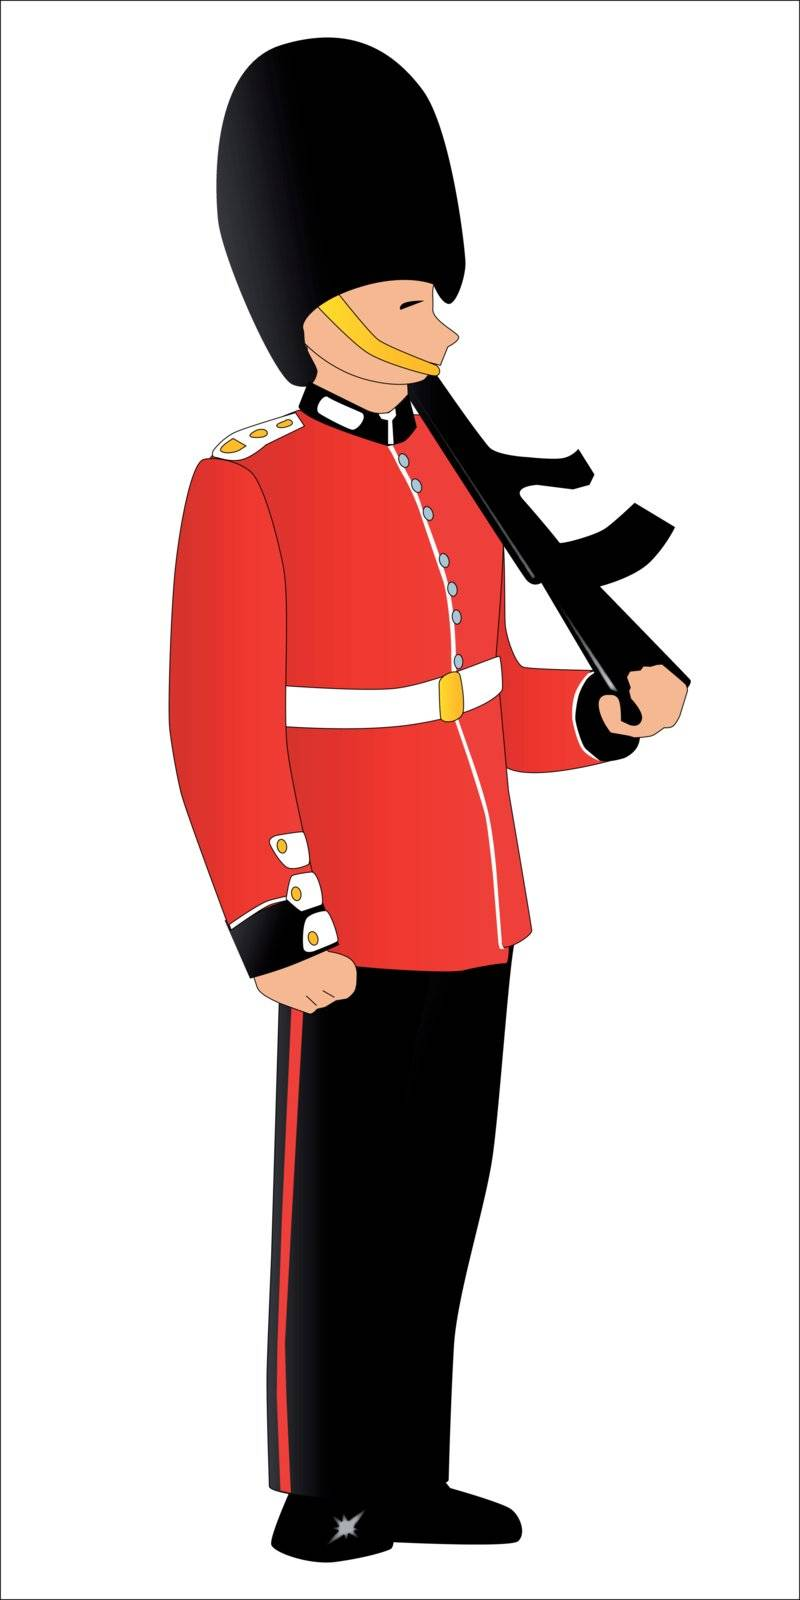 A soldier on royal guard duty, isolated on white.